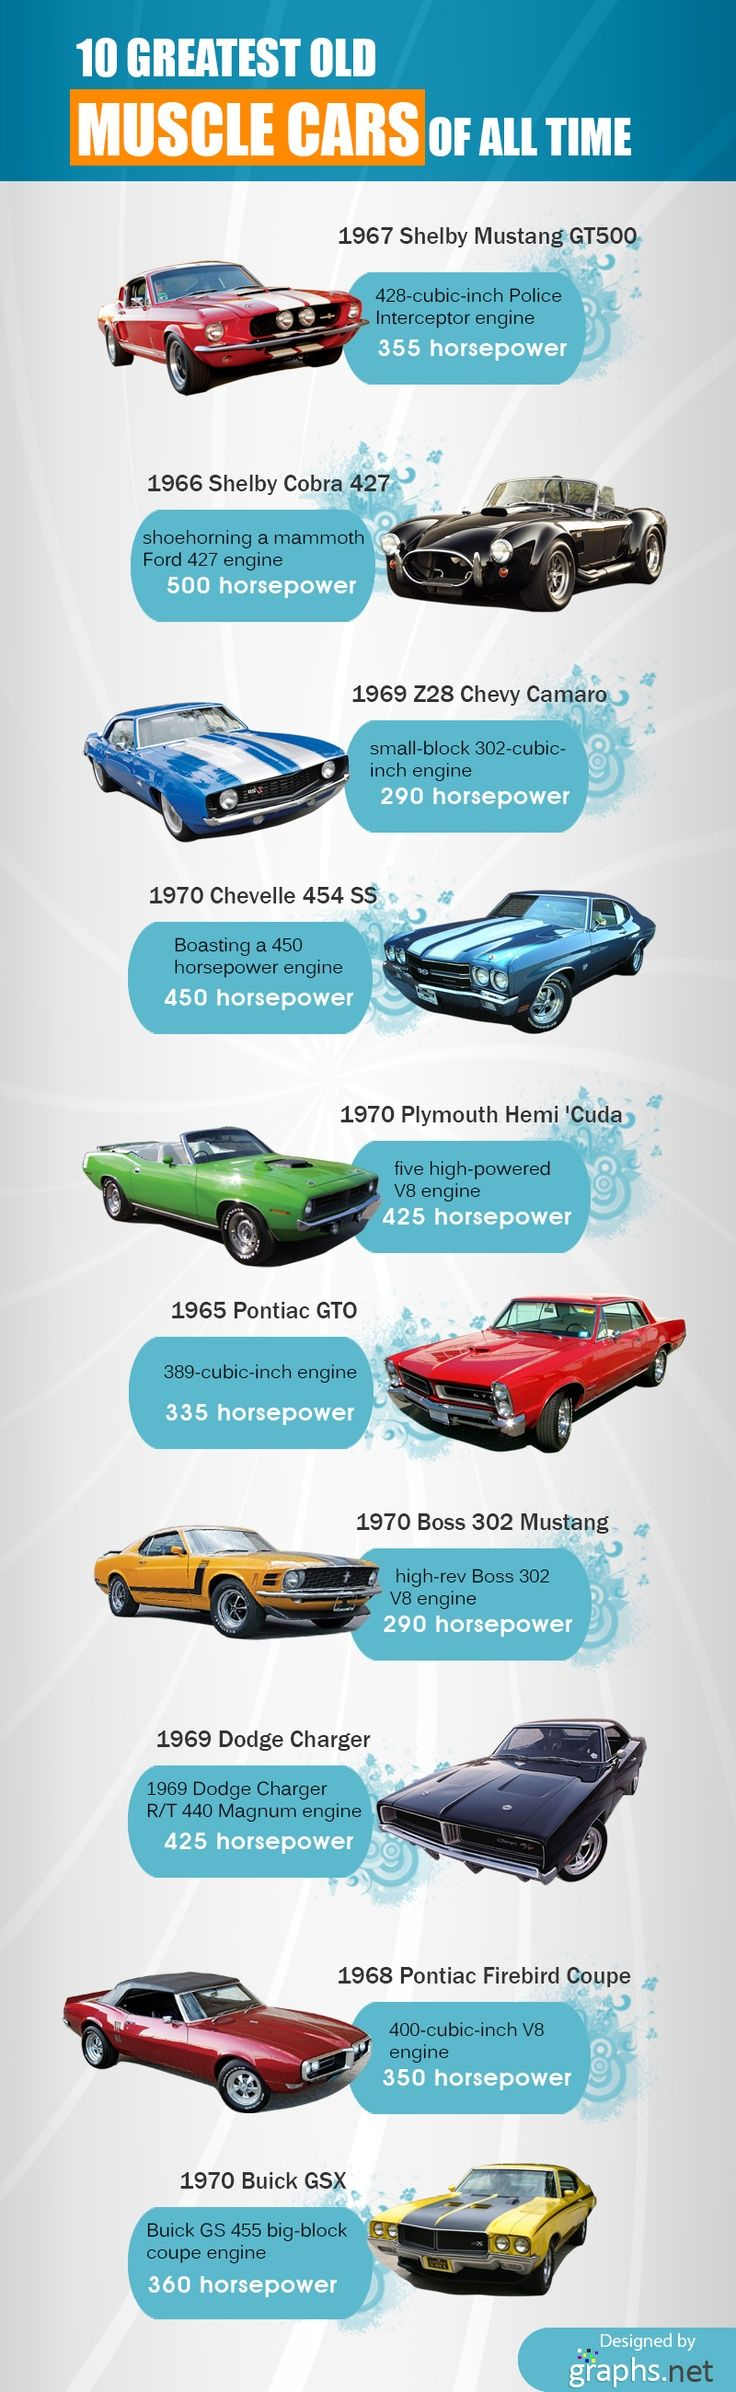 Do you agree with this list of the 10 Greatest Old Muscle Cars of ...